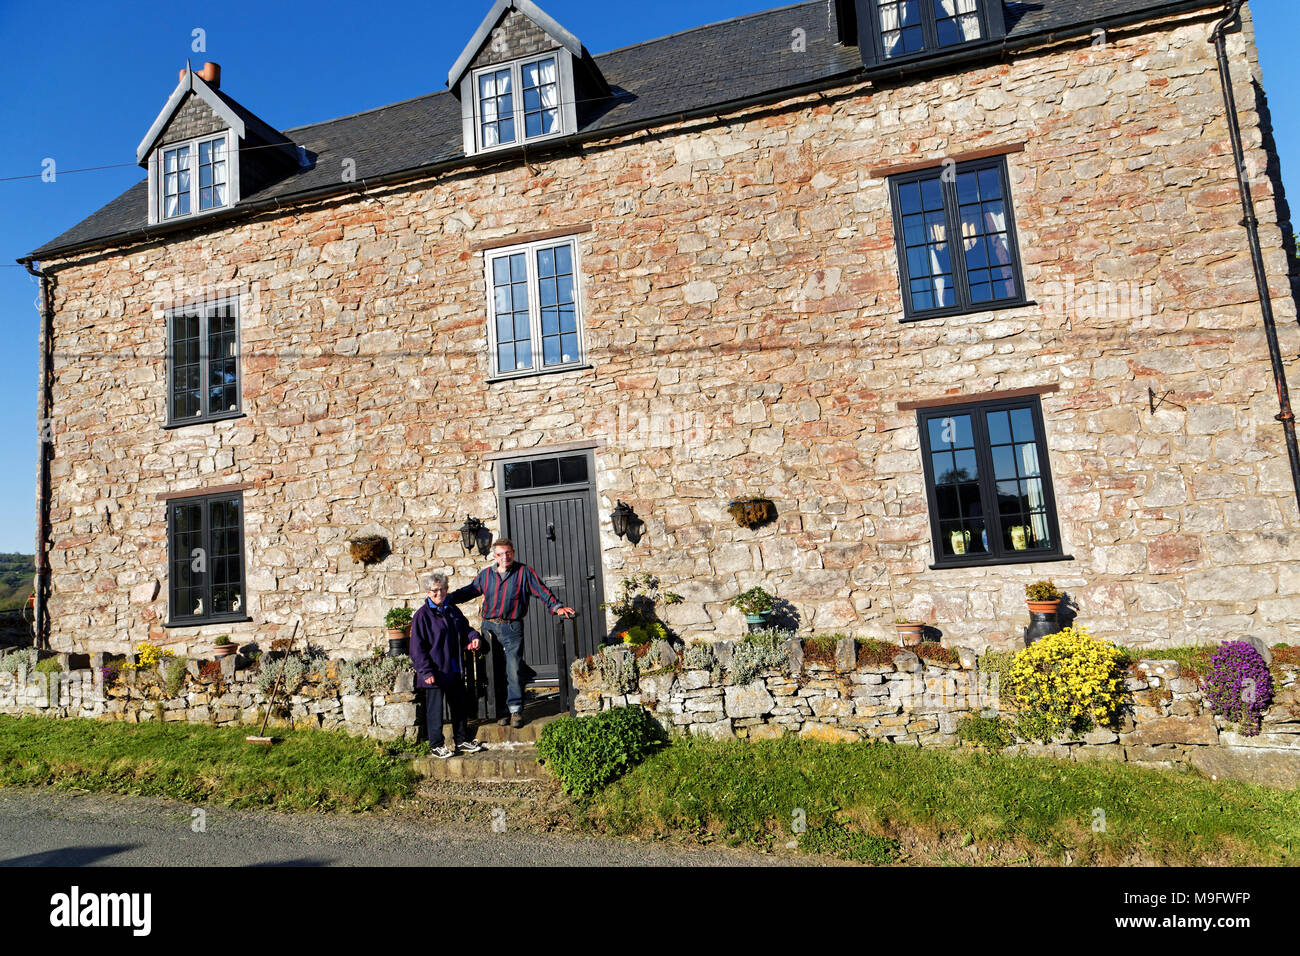 42,506.01581 longtime married couple living in a 3-story 500 yr old stone house, that was once a pub tavern - Stock Image